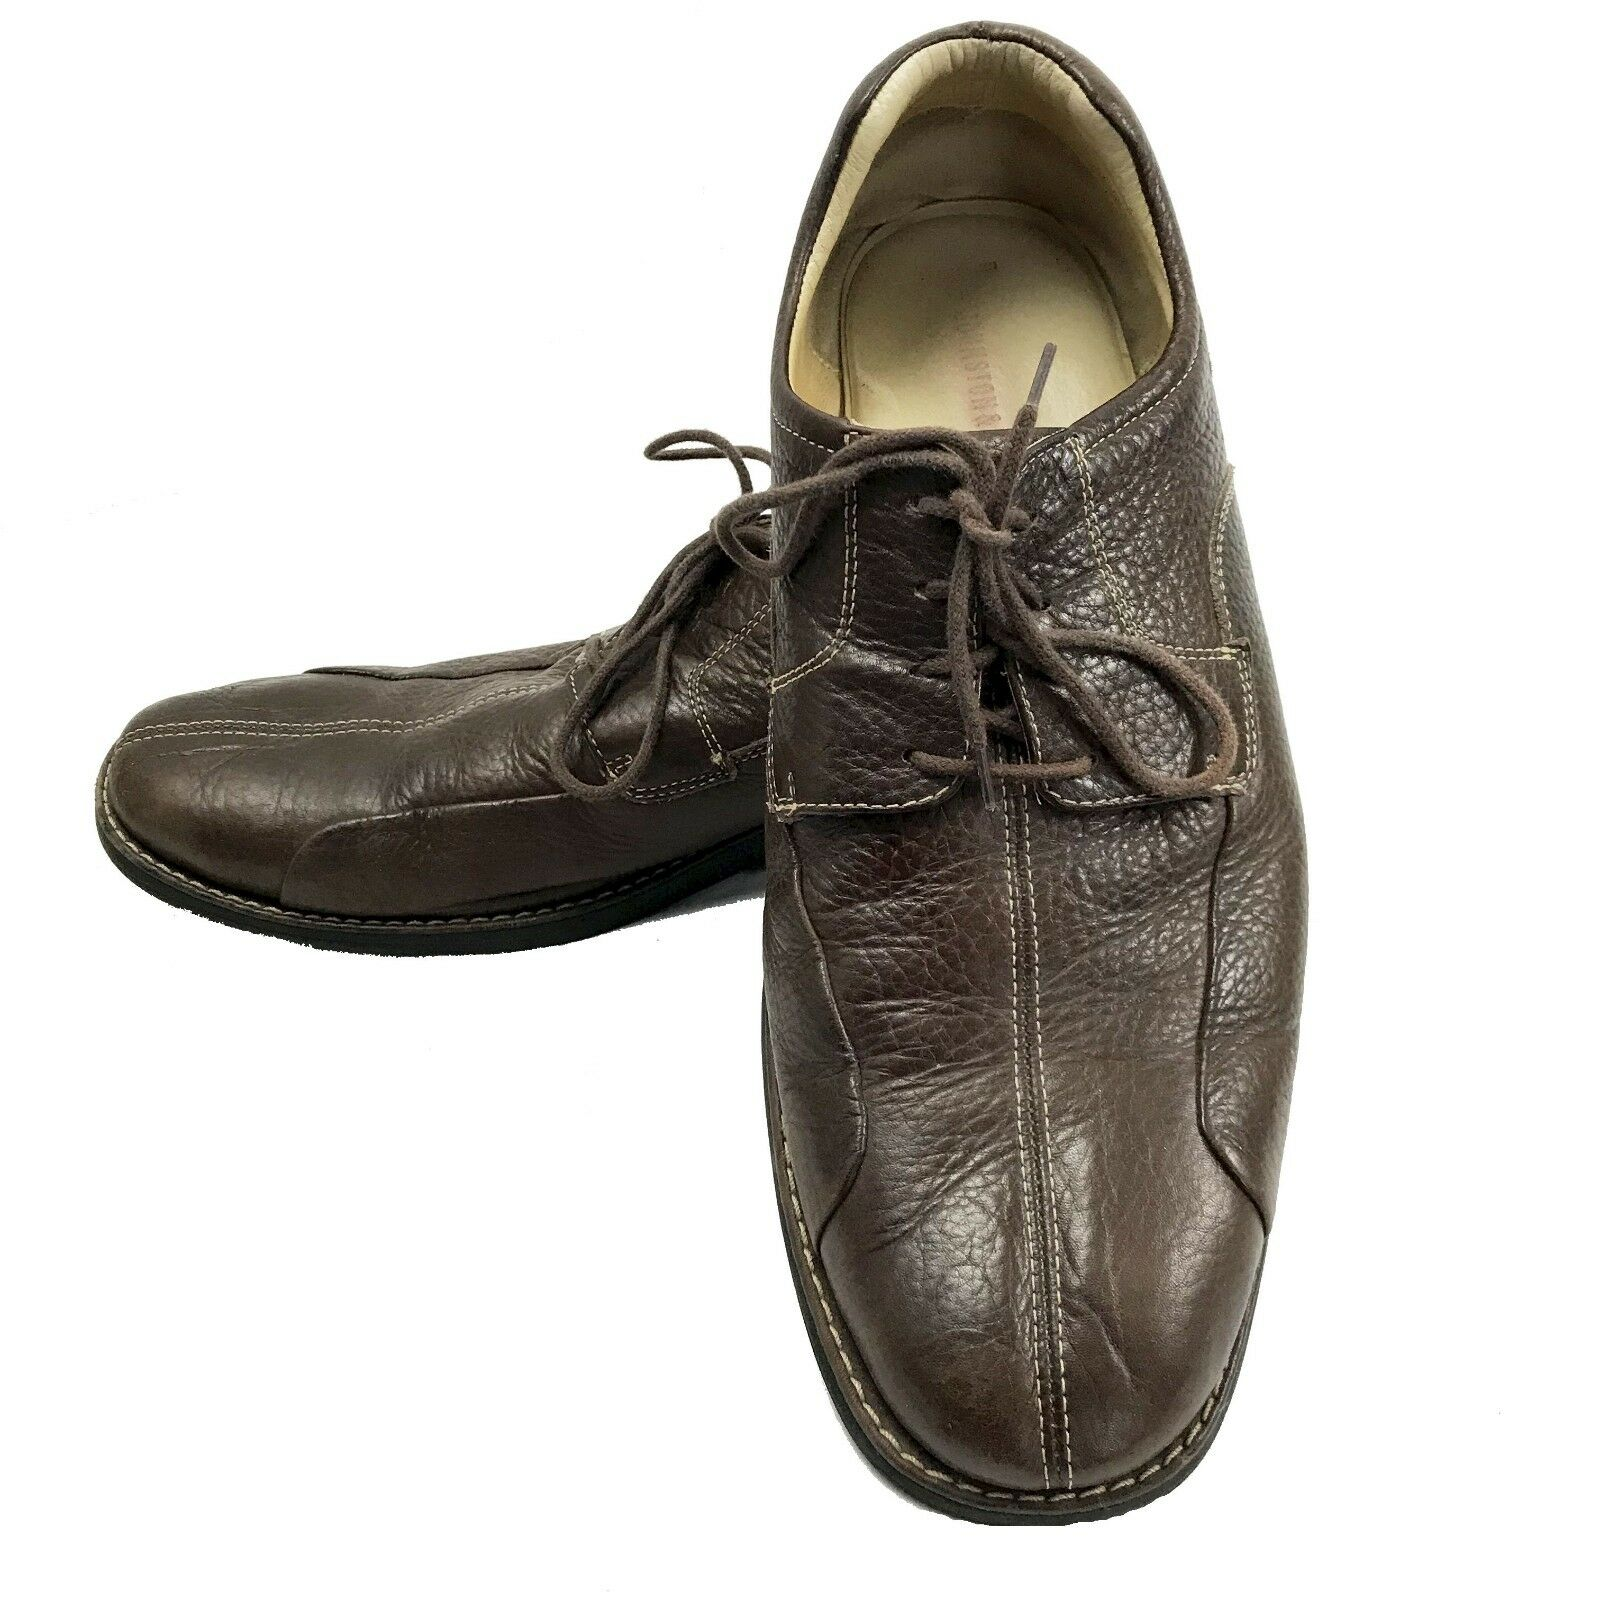 Johnston & Murphy 20-7223 Mens Brown Leather Oxford shoes Size 13 M Bicycle Toe